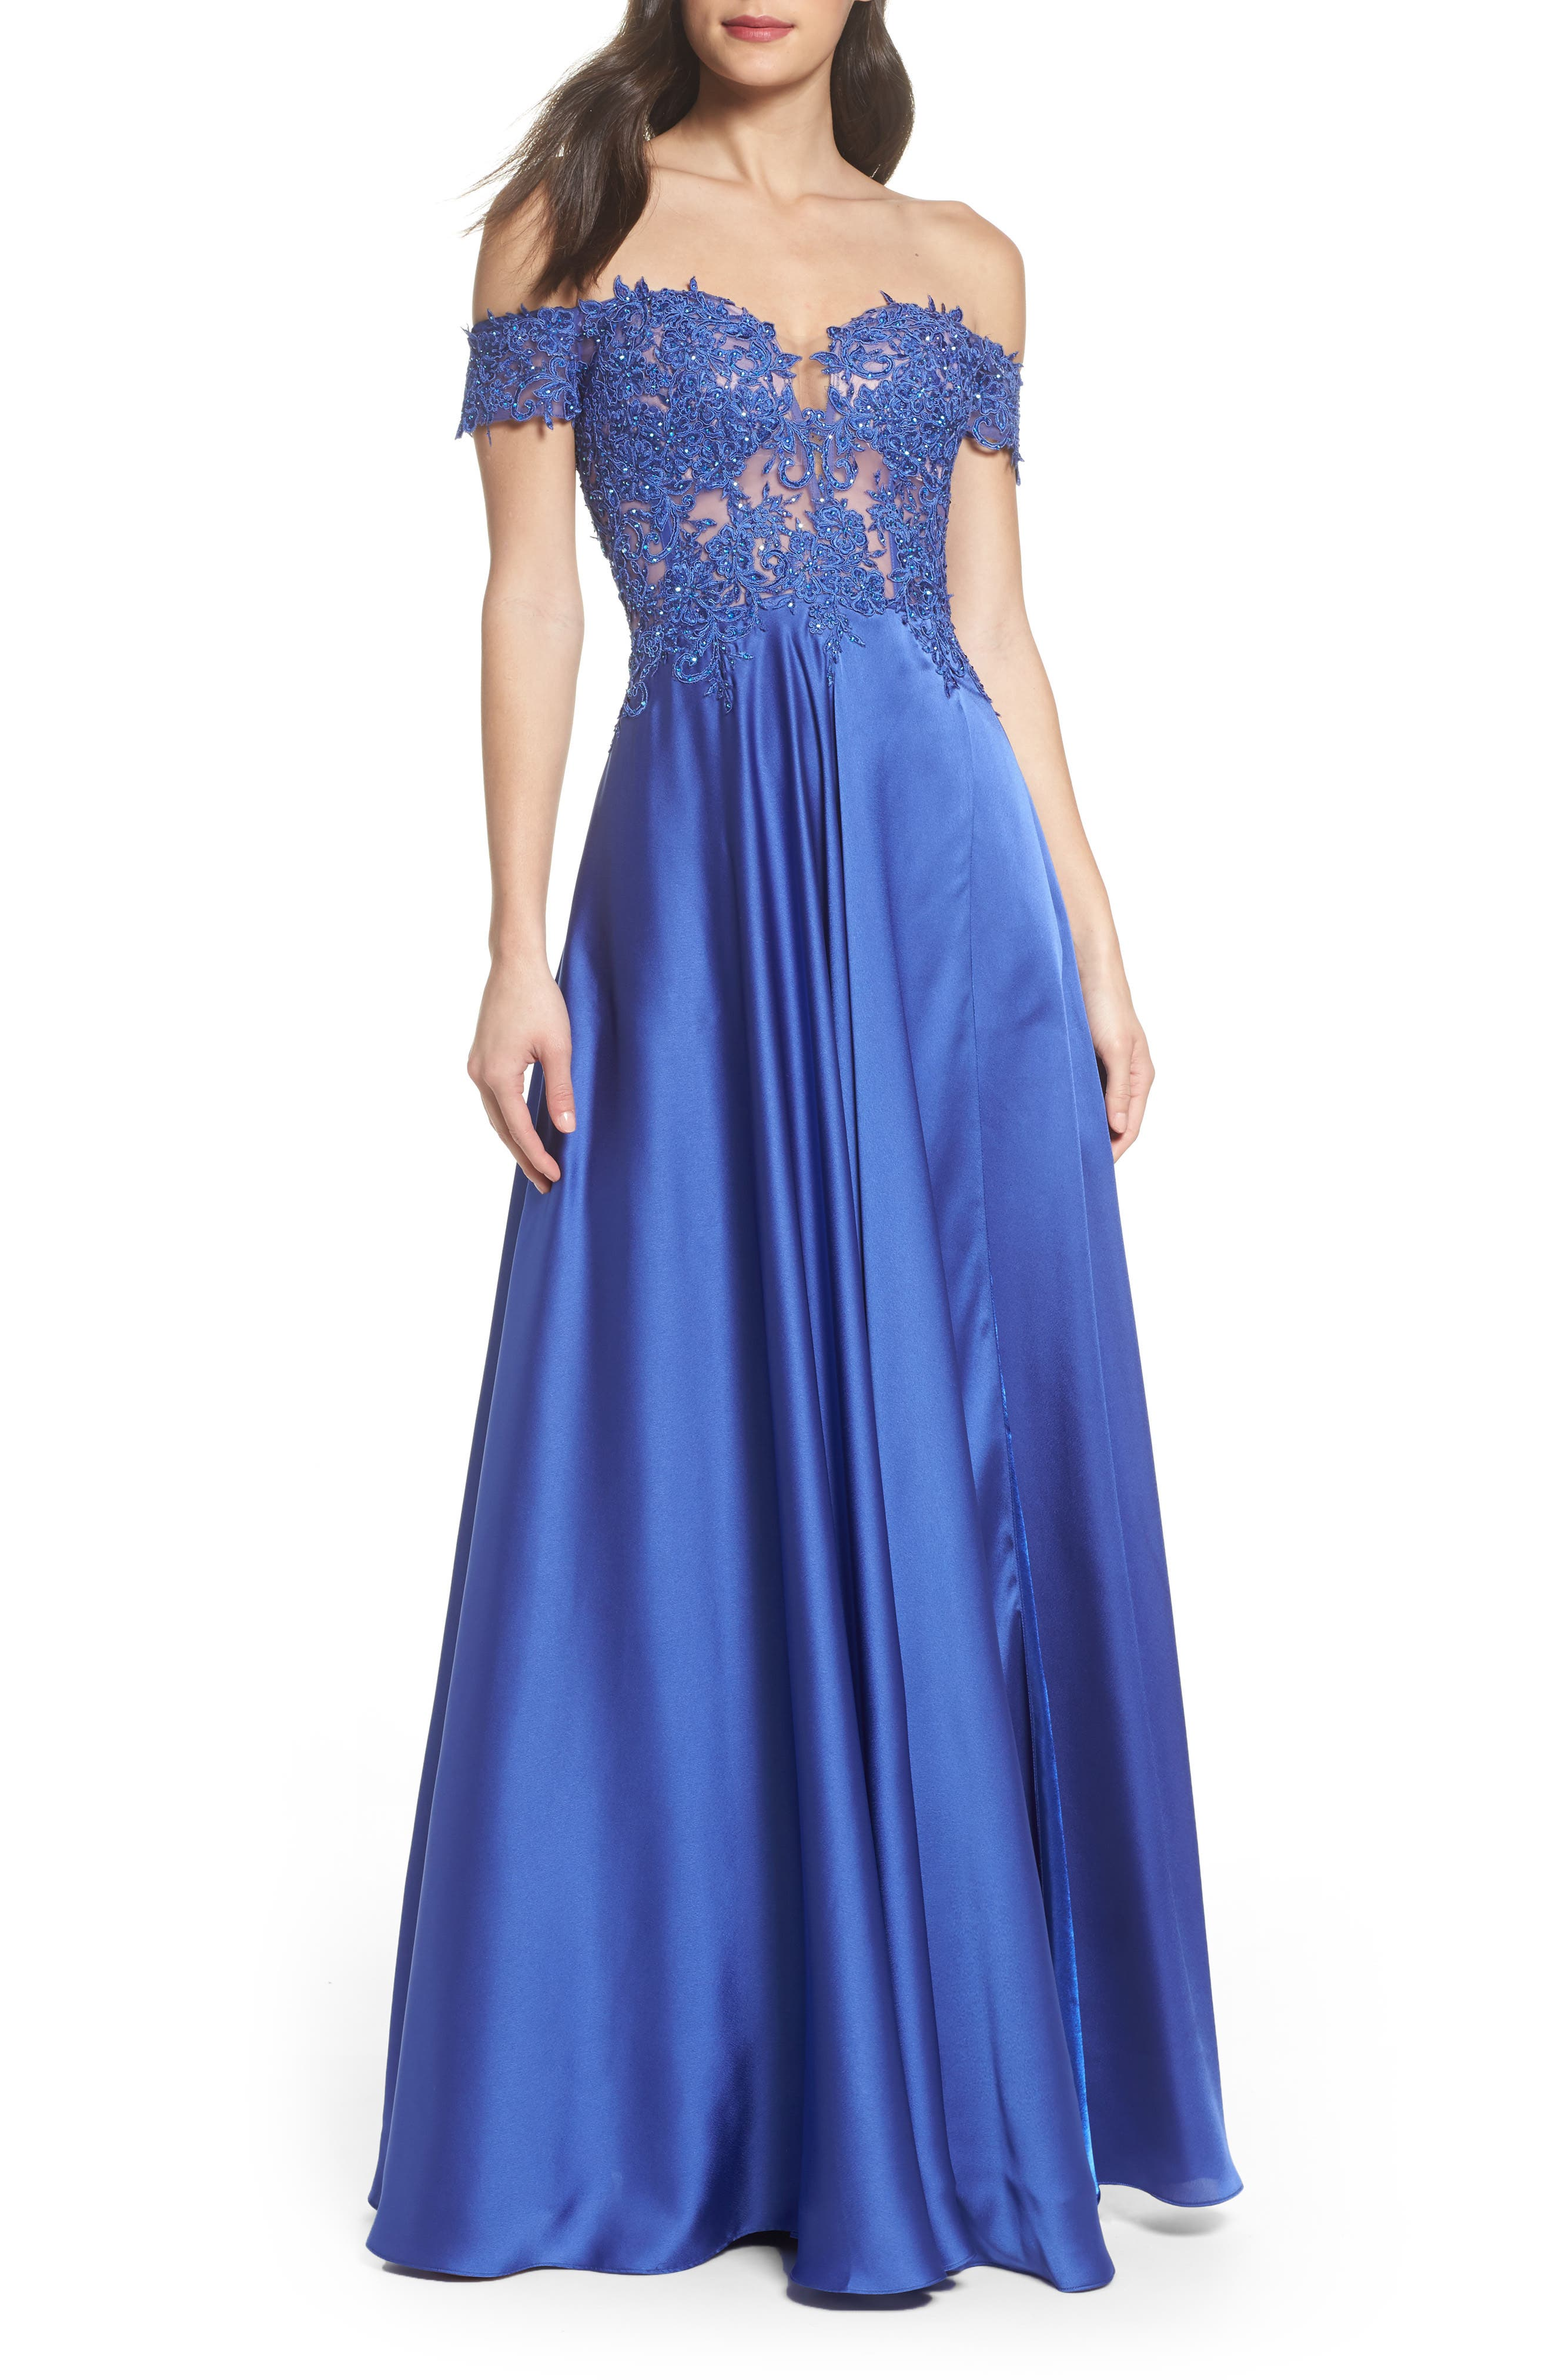 Embroidered Off the Shoulder Satin A-Line Gown,                             Main thumbnail 1, color,                             400